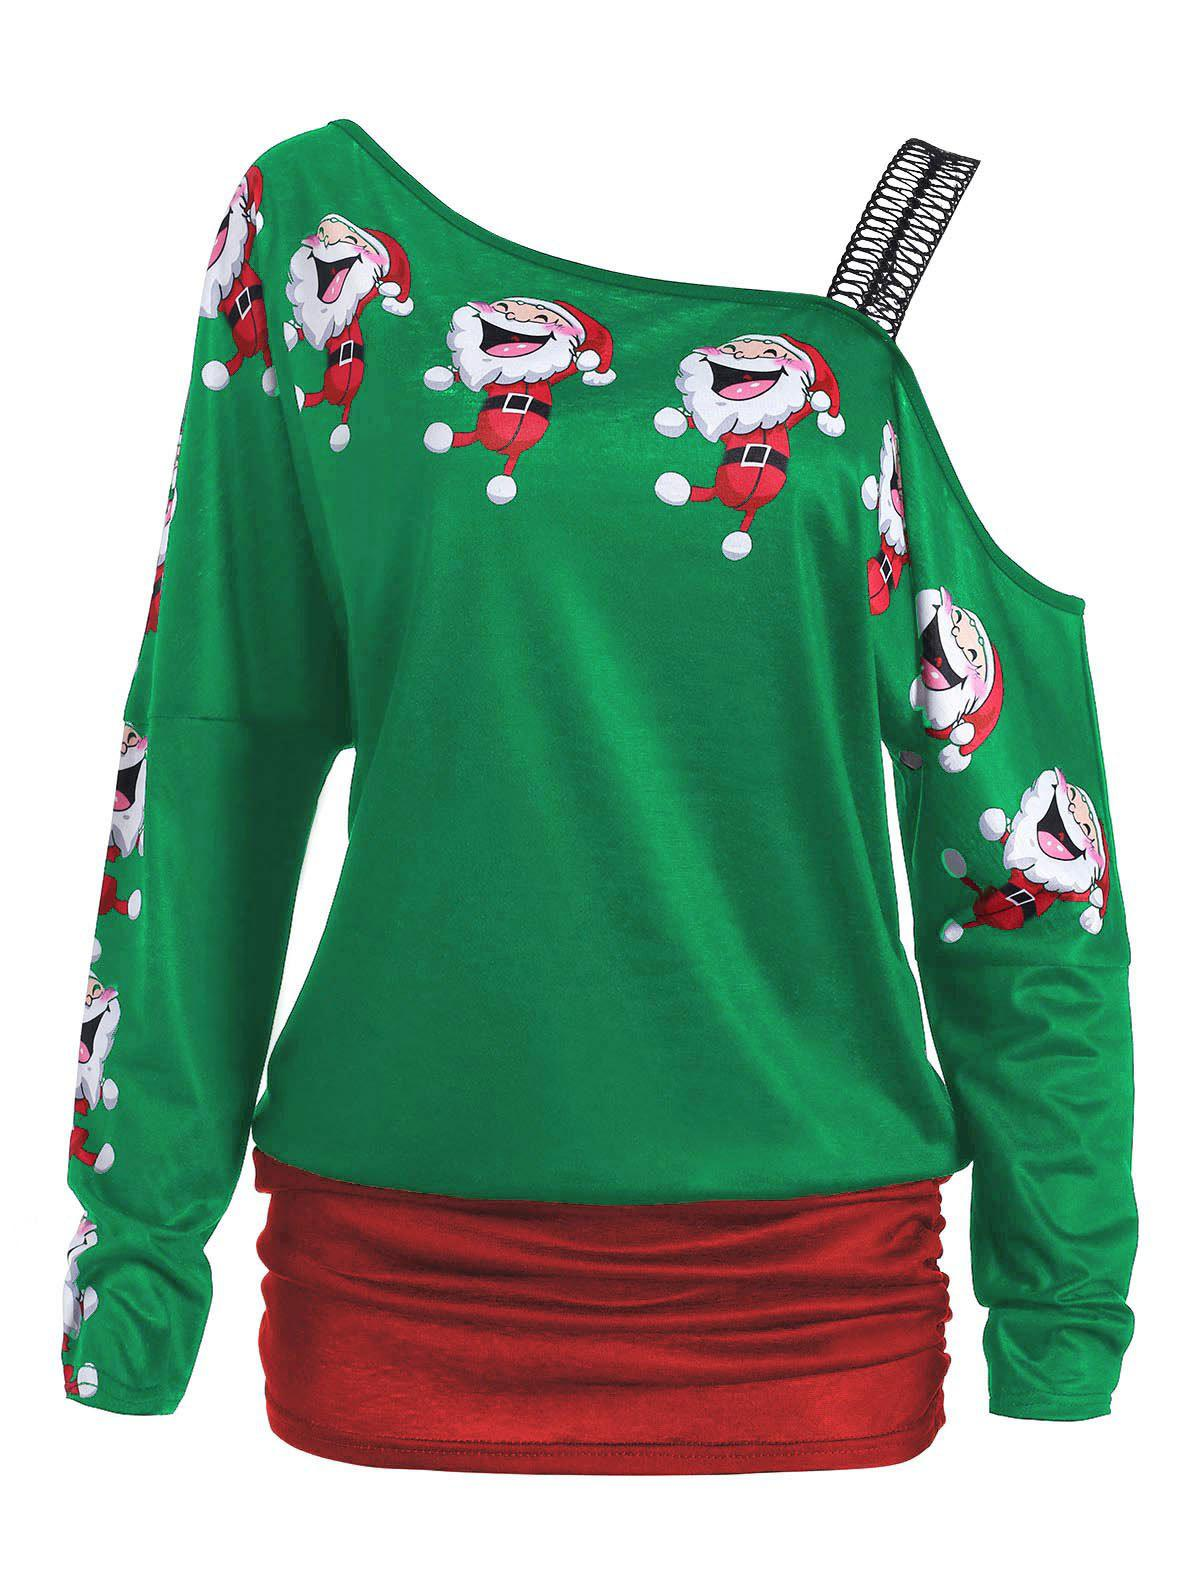 Santa Claus Laugh Print Cold Shoulder T-shirtWOMEN<br><br>Size: L; Color: GREEN; Material: Polyester; Shirt Length: Regular; Sleeve Length: Full; Collar: Round Neck; Style: Fashion; Sleeve Type: Cold Shoulder; Pattern Type: Cartoon,Print; Season: Fall,Spring,Winter; Weight: 0.2200kg; Package Contents: 1 x T-shirt;